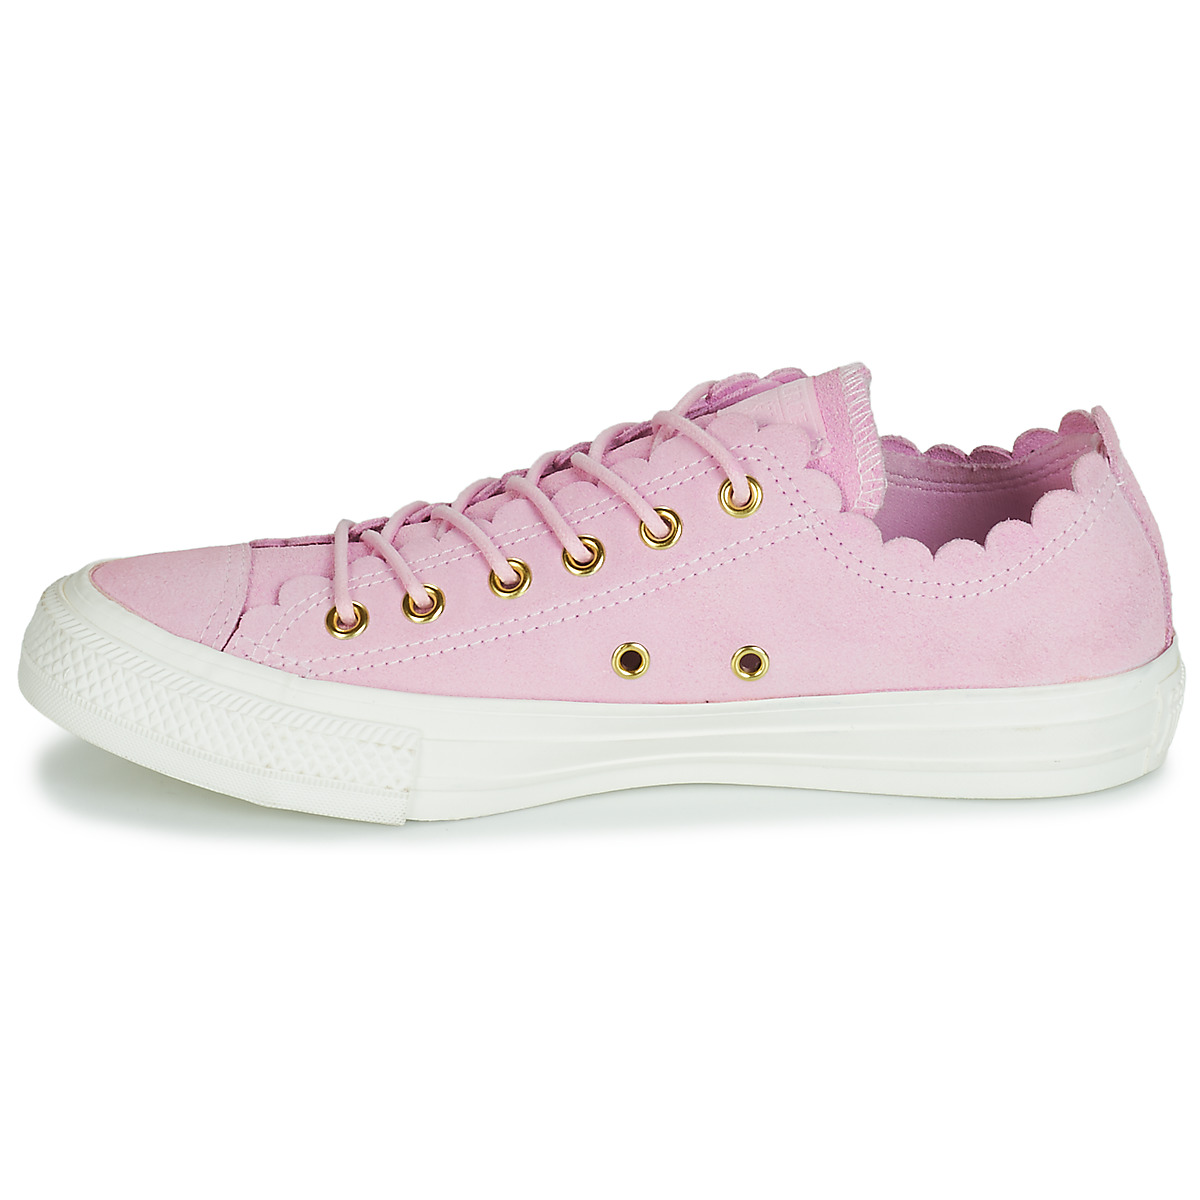 Converse CHUCK TAYLOR ALL STAR FRILLY THRILLS SUEDE OX Rosa 12845796 Consegna Gratuita OutletScarpeOnline.it